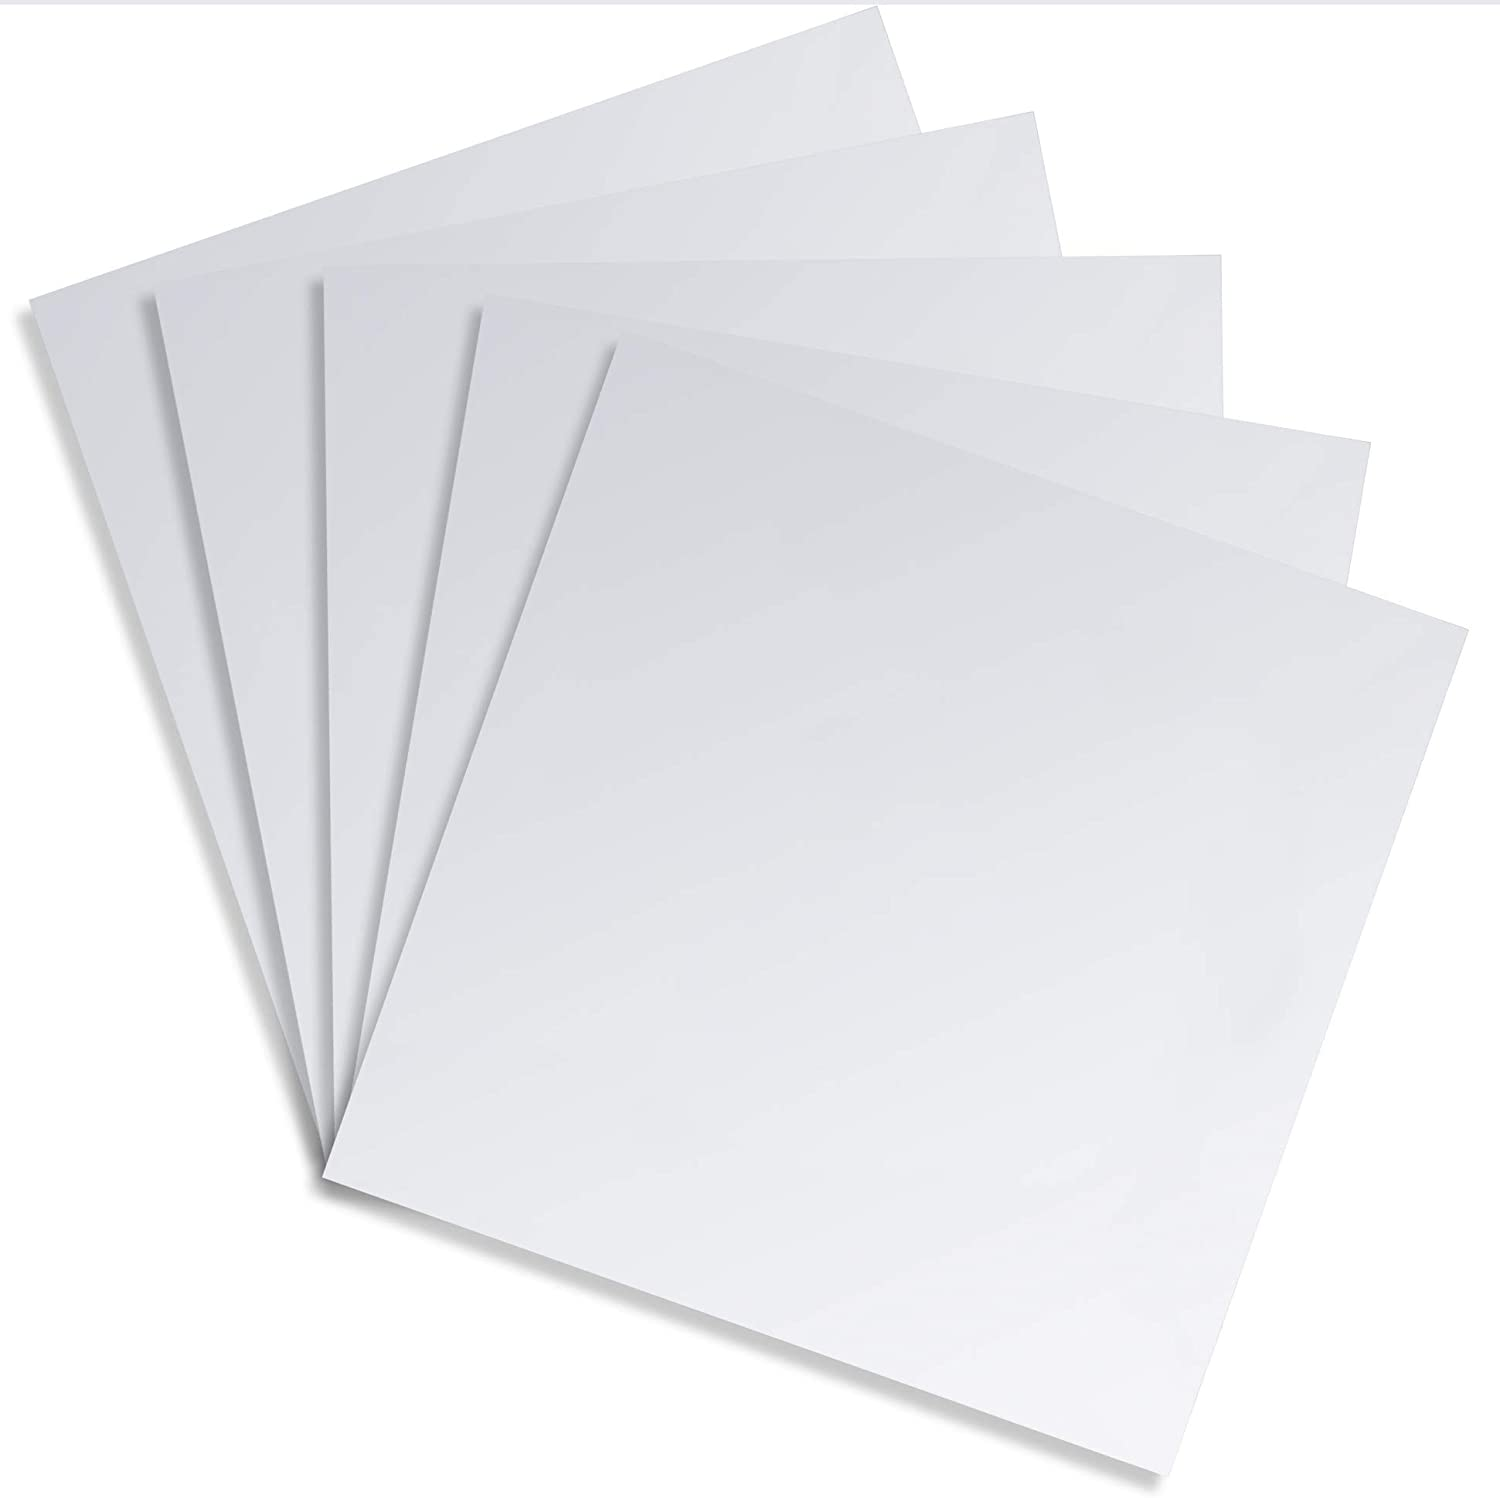 Flexible Shiny Metallic Sheets for Arts and Crafts (Silver, 11.8 in, 5 Pack)